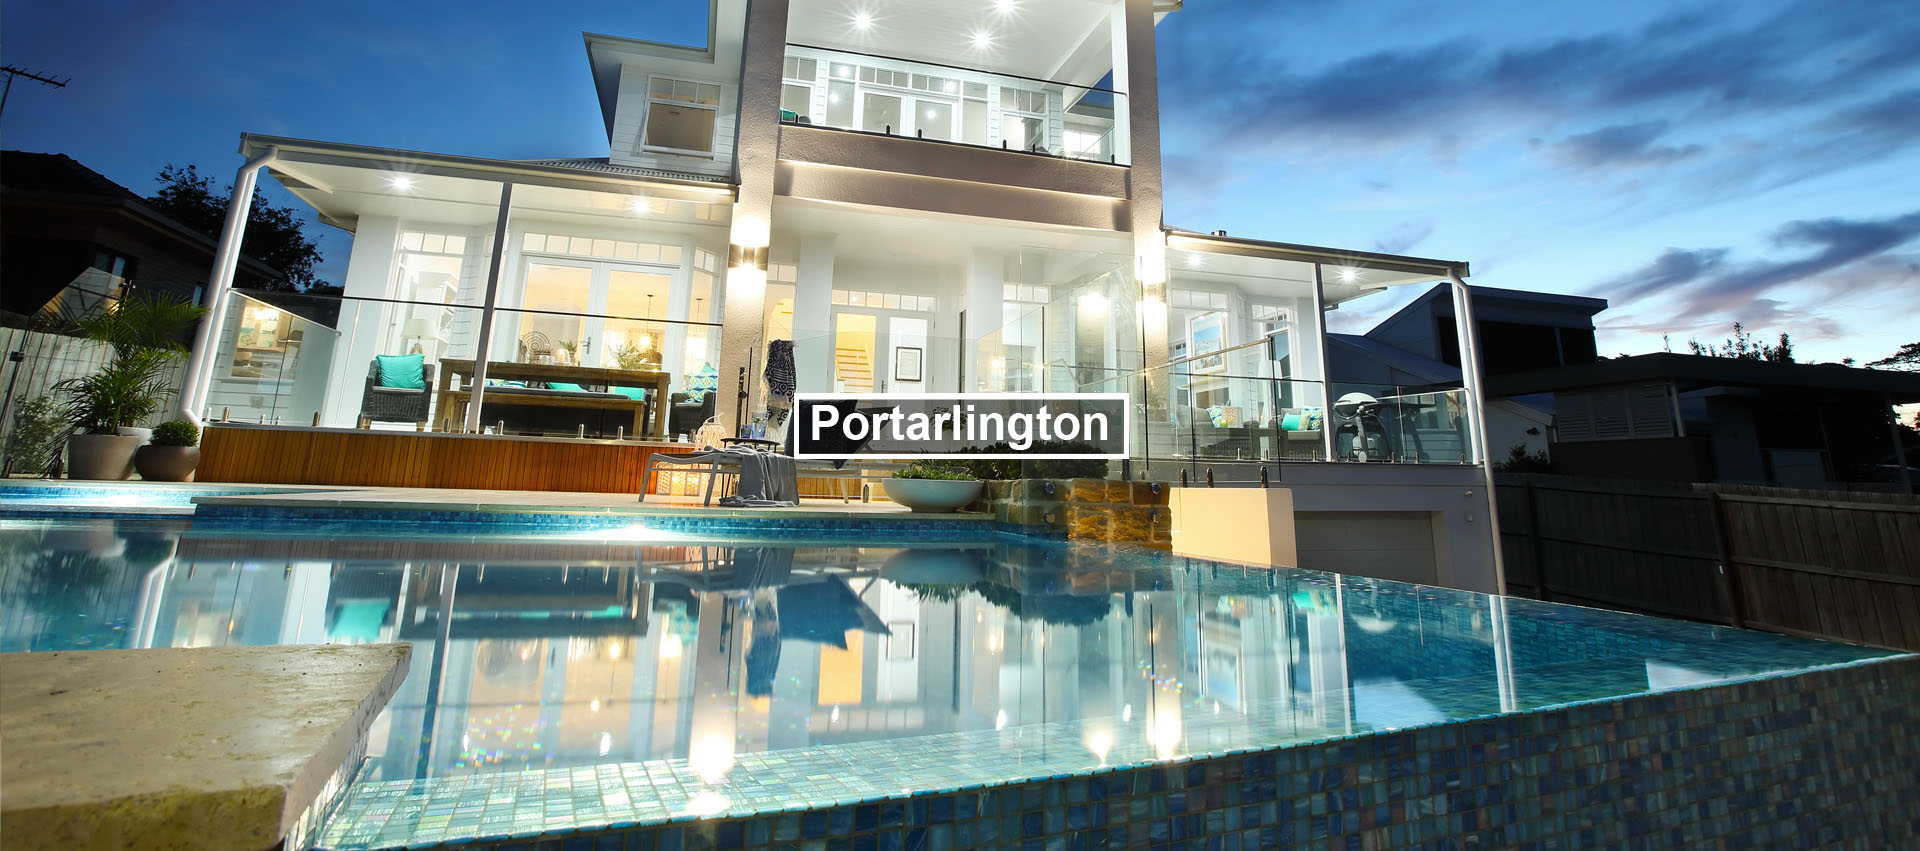 Portarlington - Kiama Pools Swimming Pool Project